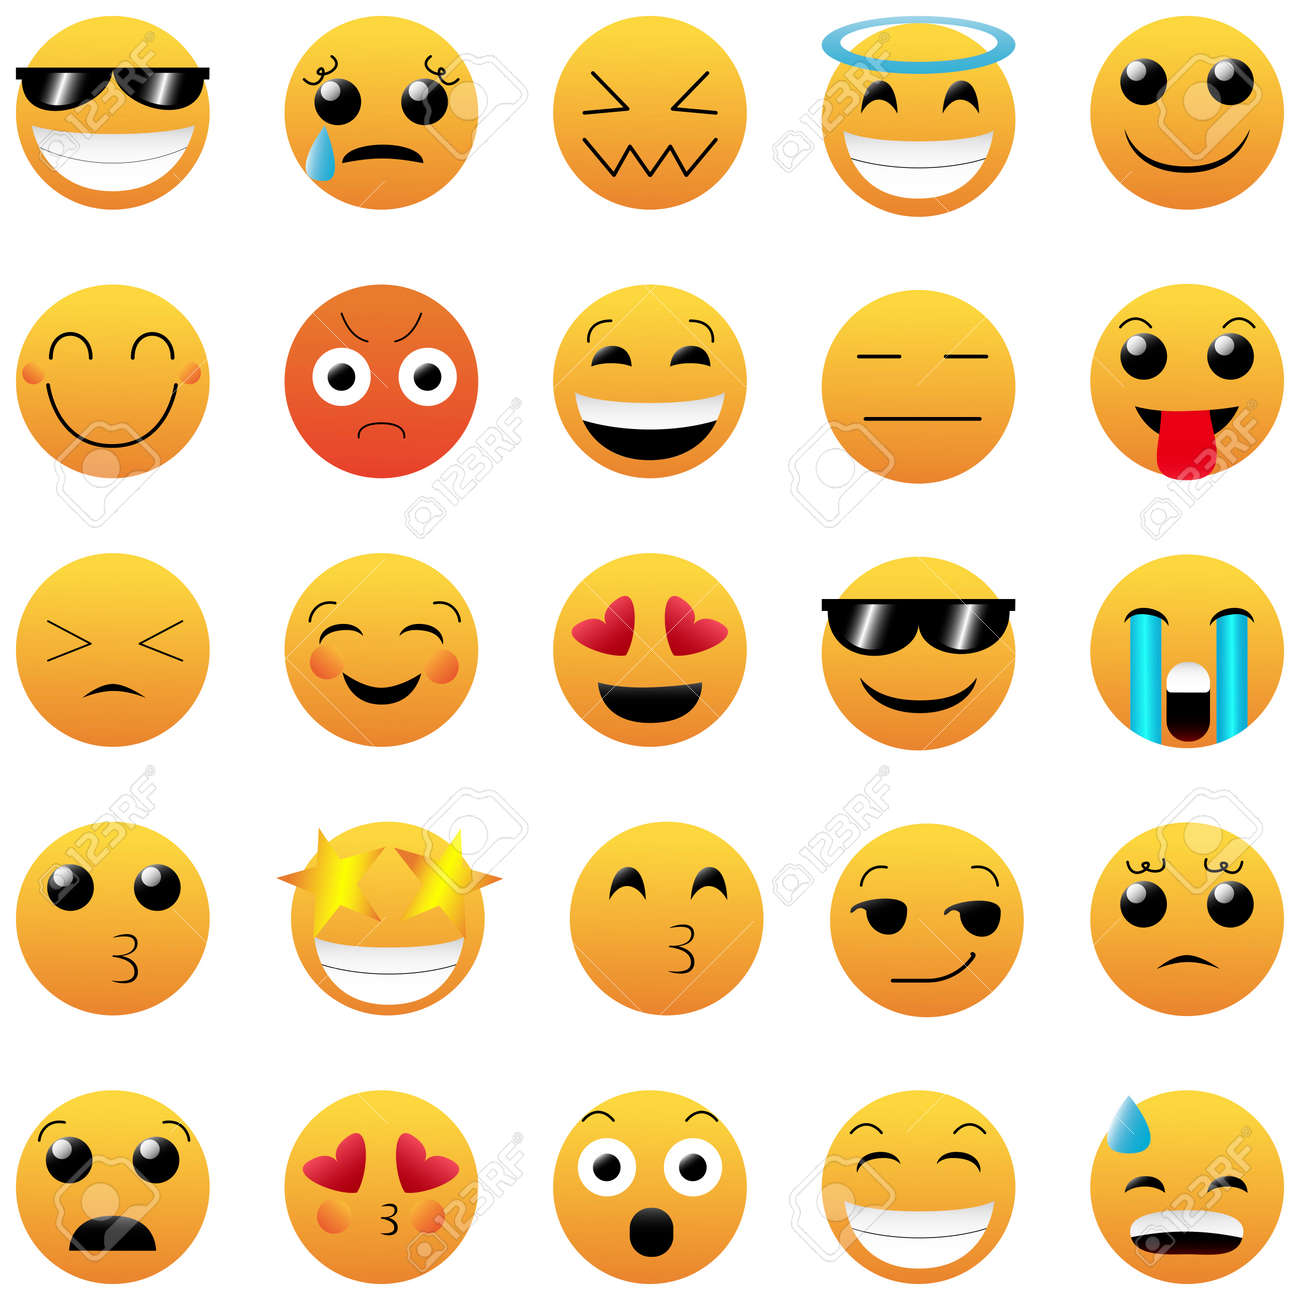 Set of Cute Emoticons on White Background. Isolated Vector Illustration. - 159991723